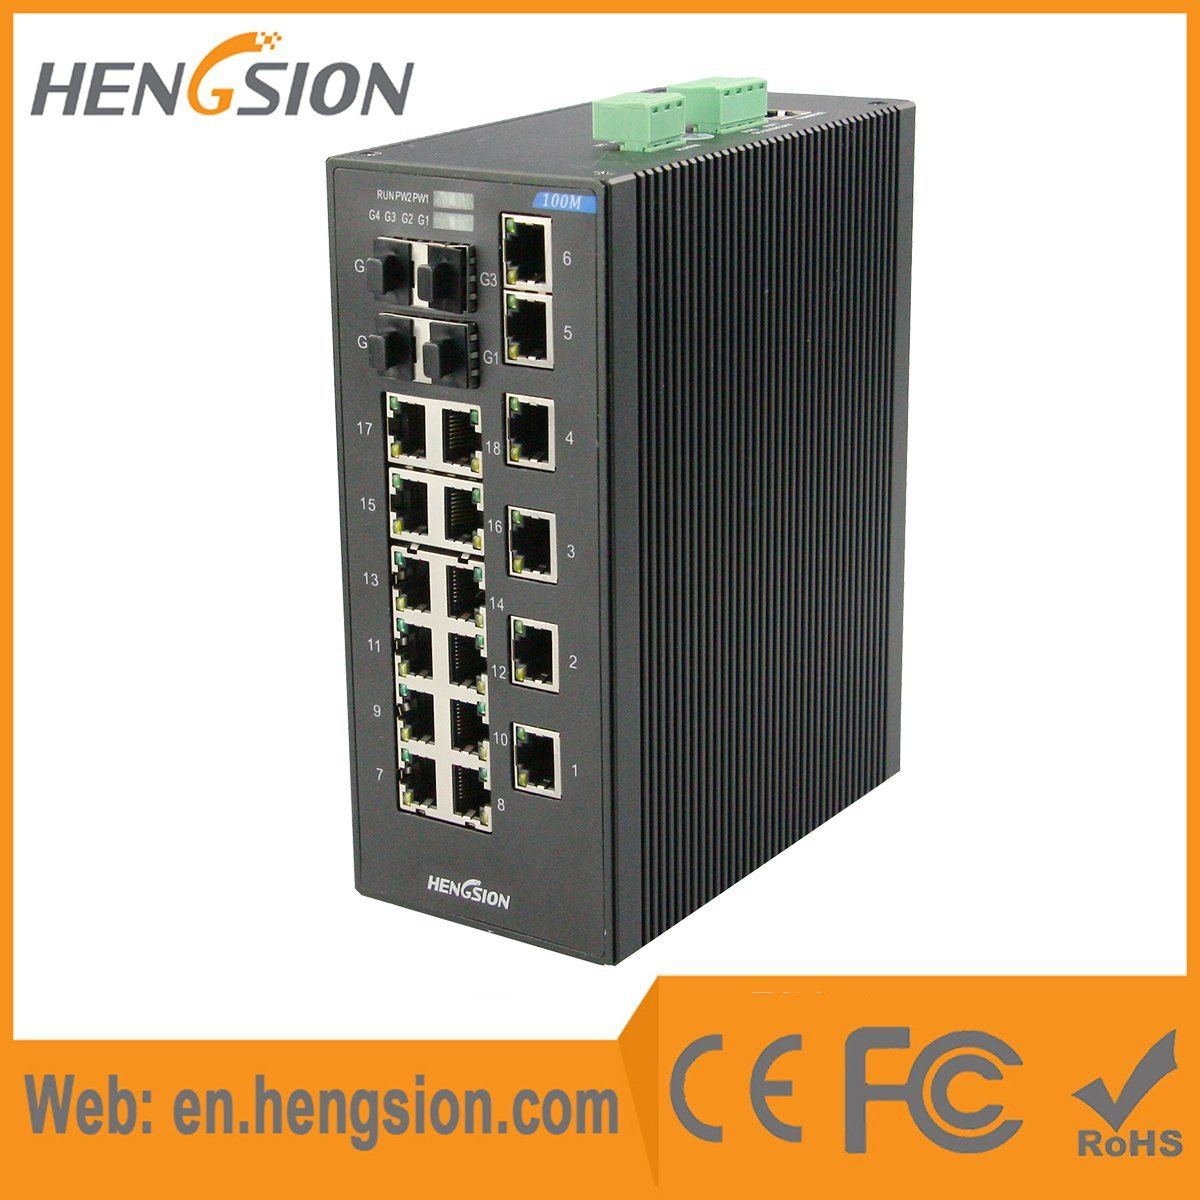 18 Port Industrial Ethernet Network Switch with 4 Gigabit Combo